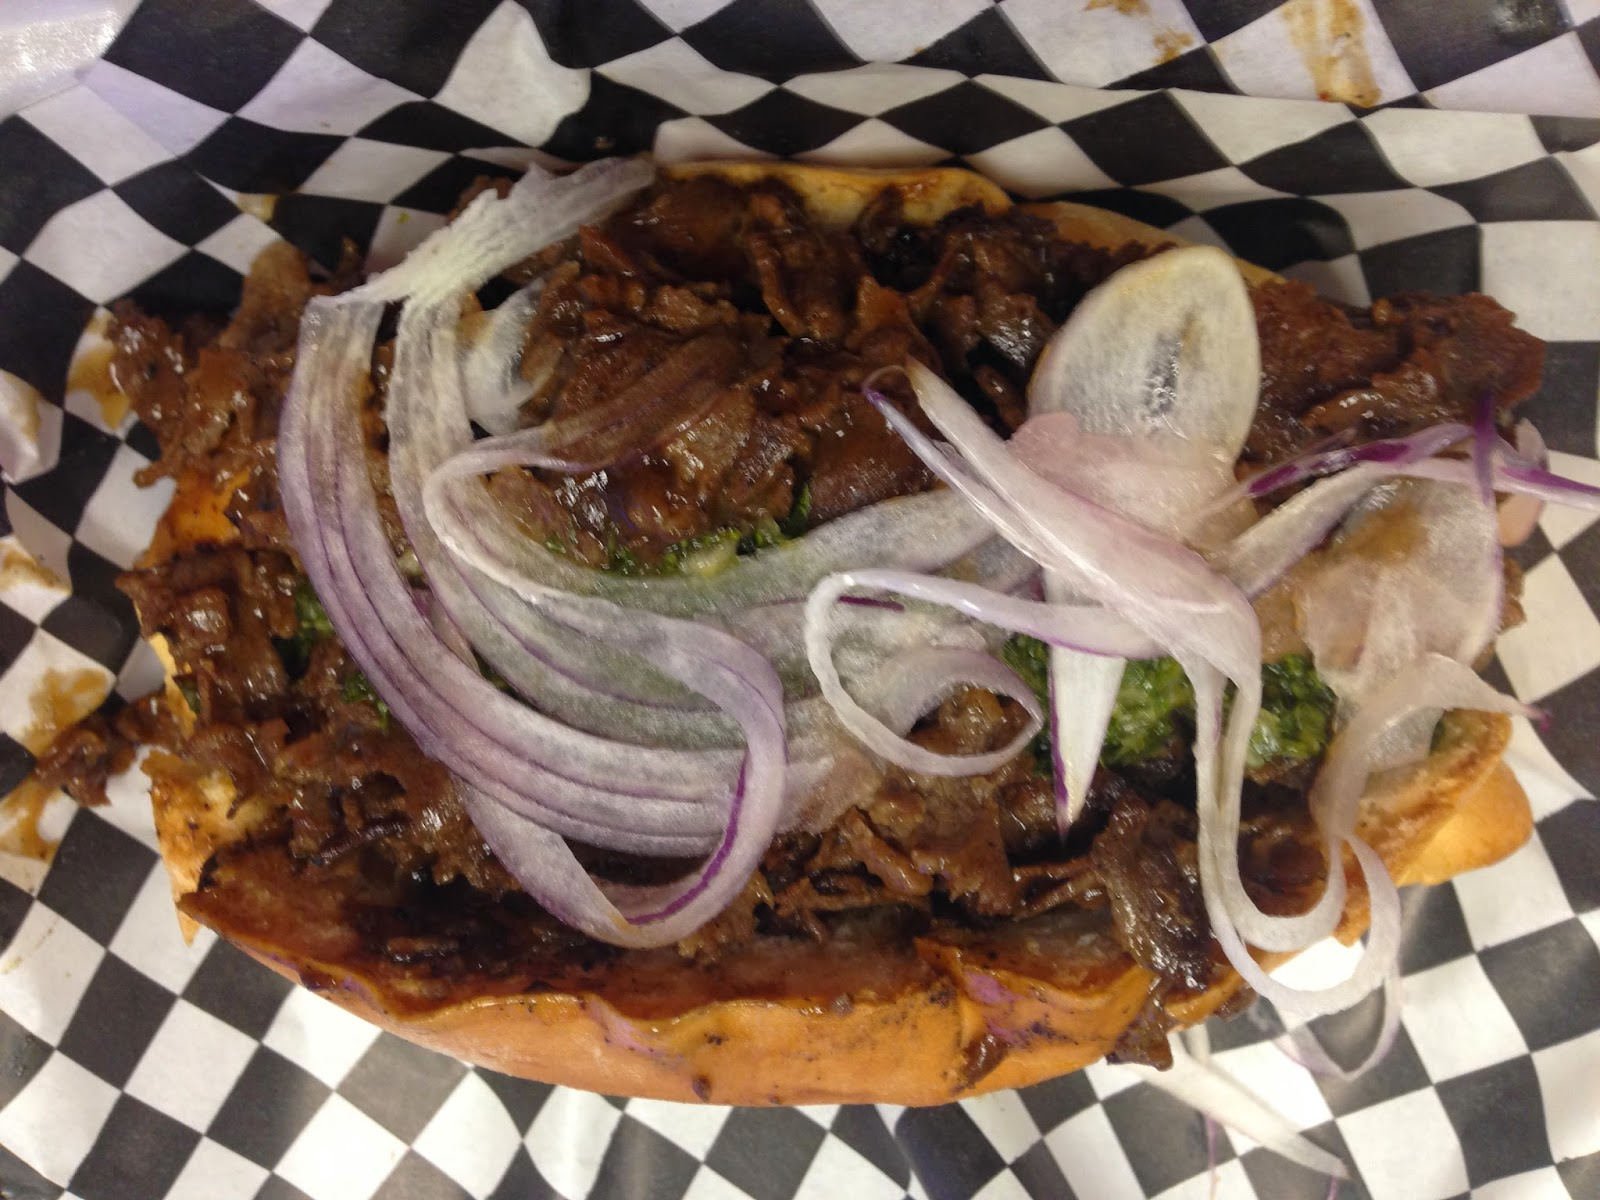 Skratch Food Truck Houston TX Brazilian Sandwich